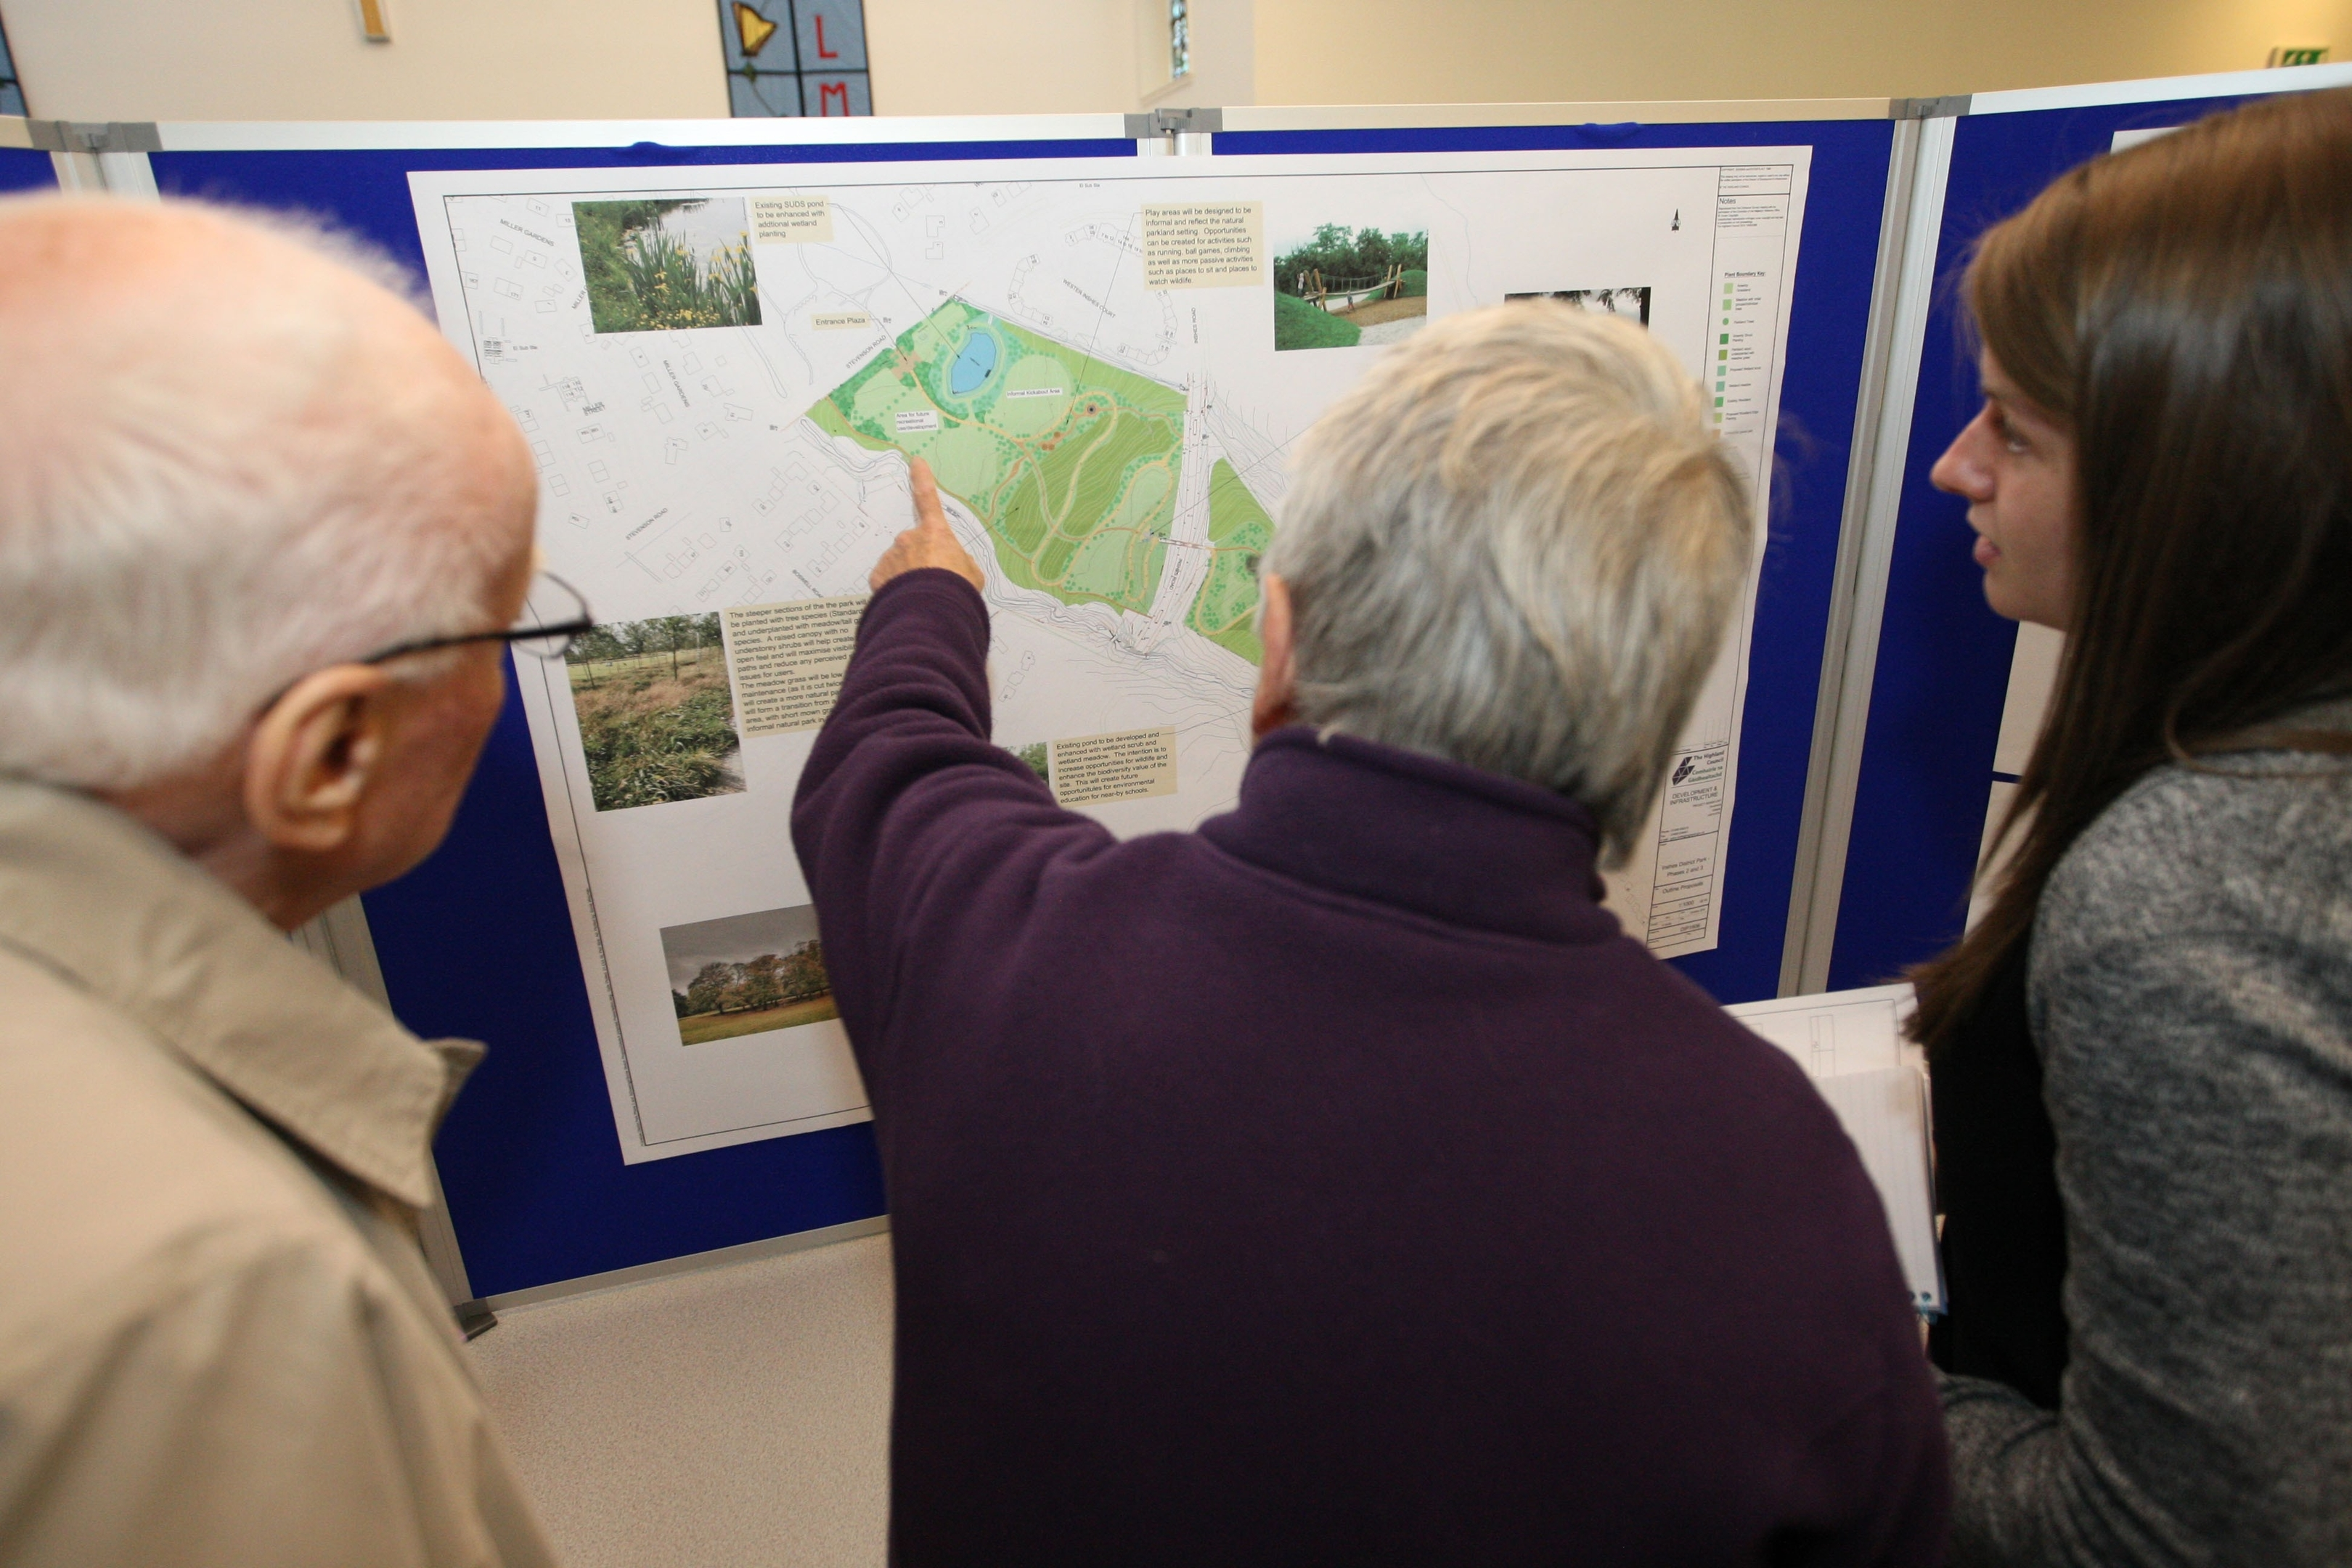 Plans for phases two and three of Inshes Park development have gone on display at Inshes Church.